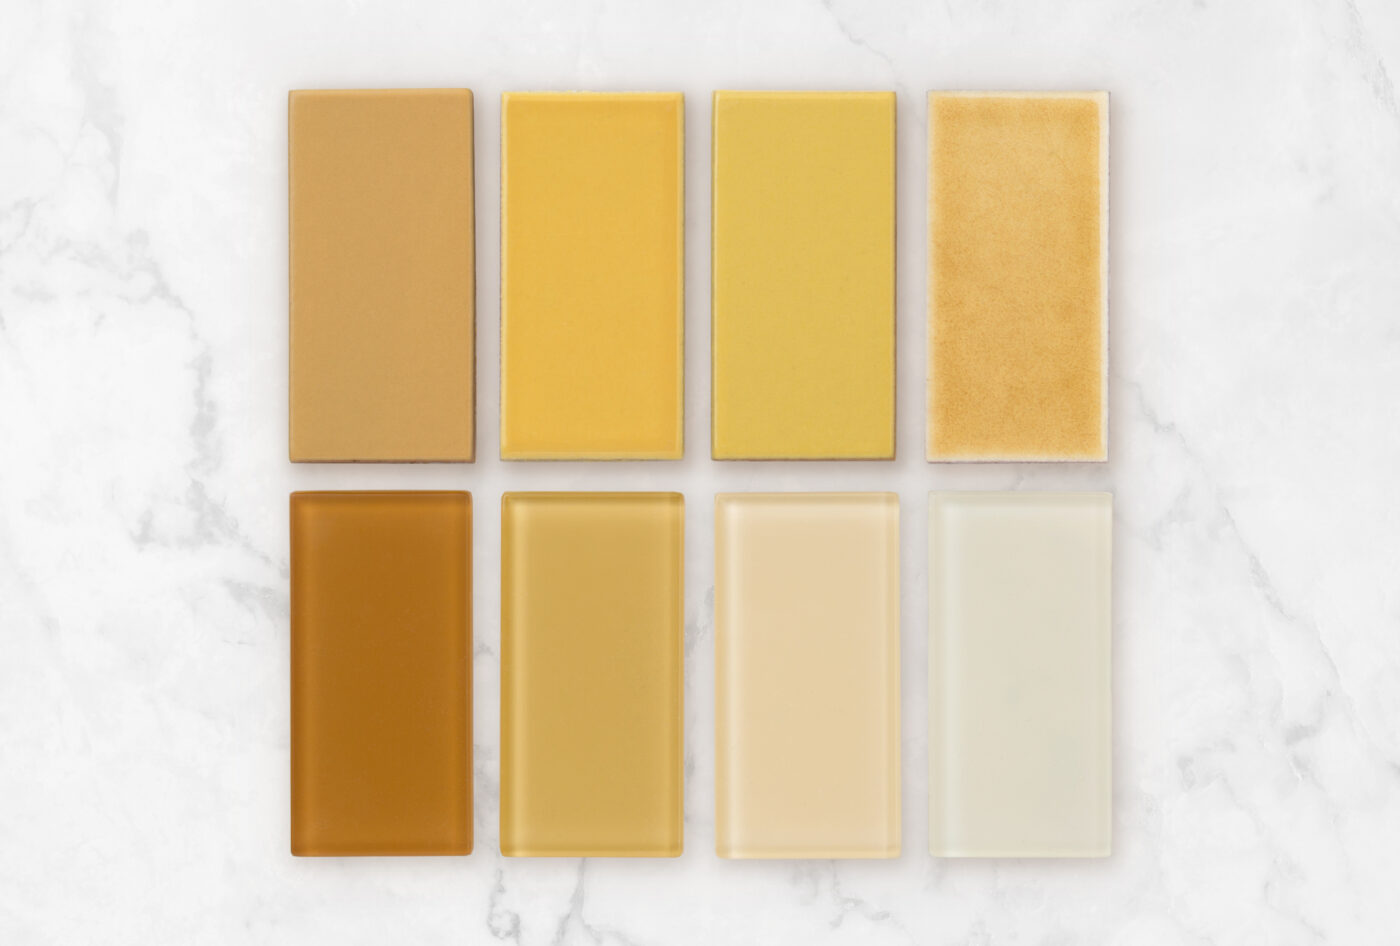 2019 Q3 Fireclay Favorites Yellows All Color Samples Sunflower Tuolumne Meadows Daffodil Haystack Falcon Matte Oriole Gloss Chickadee Gloss Sparrow Matte